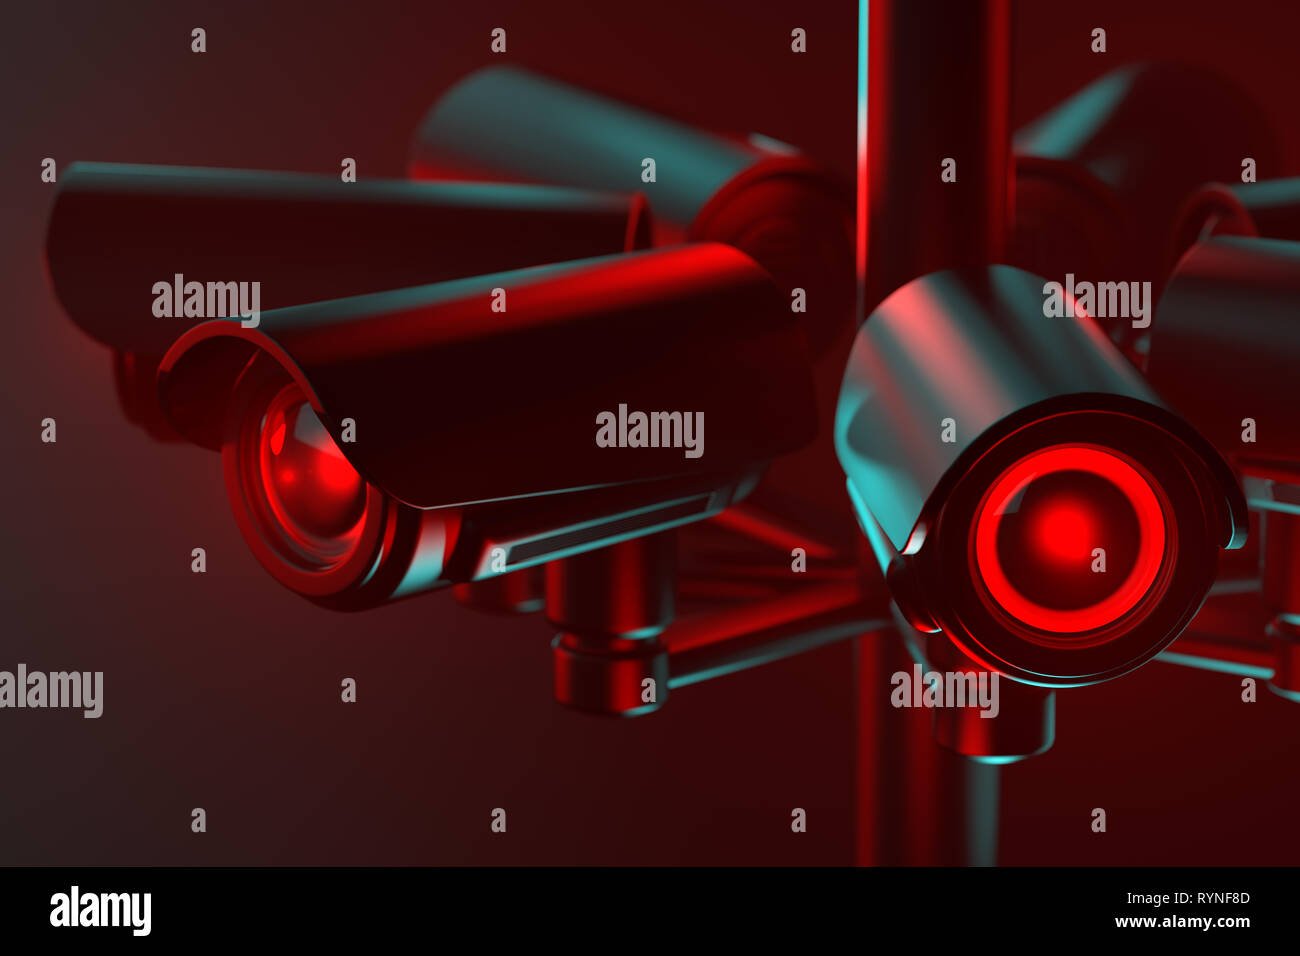 Close up on cctv lens as a metaphor of society controlled with surveillance system. 3D rendering - Stock Image